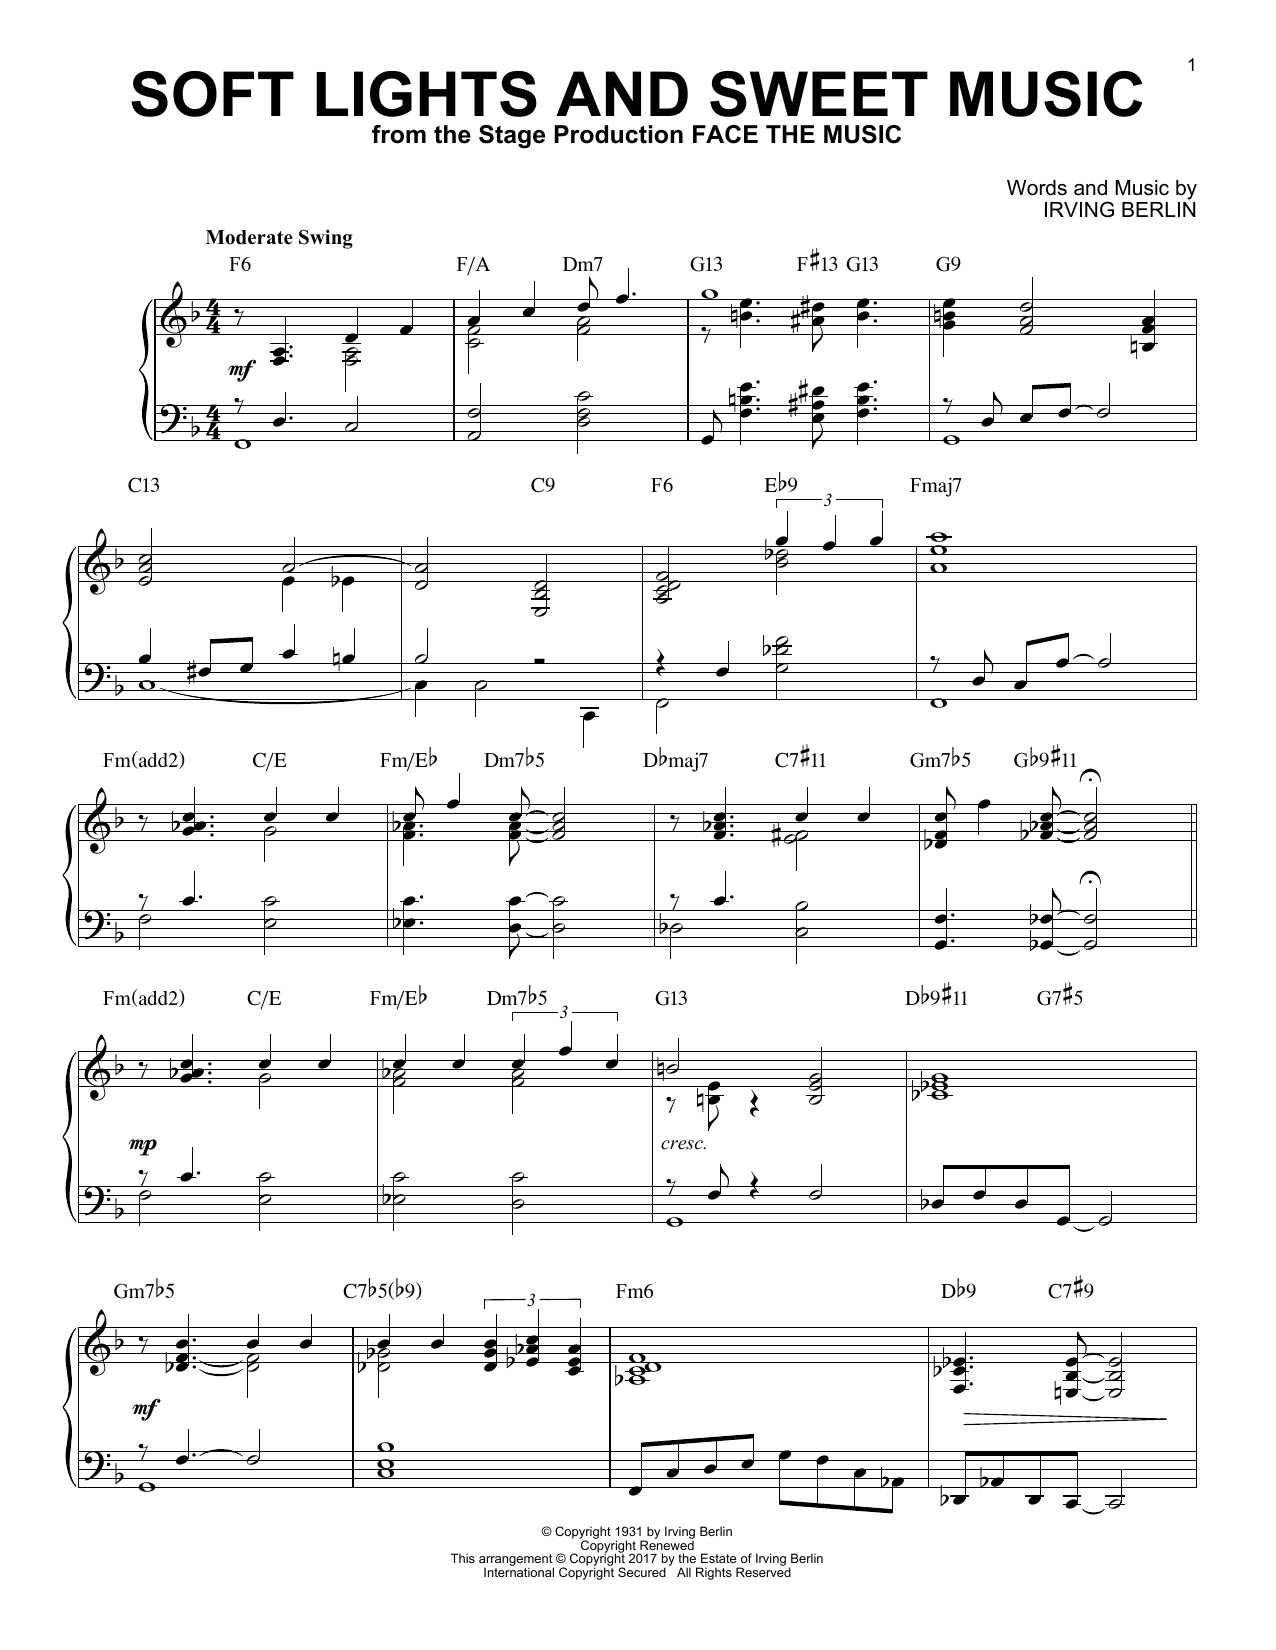 Irving Berlin Soft Lights And Sweet Music [Jazz version] sheet music notes and chords. Download Printable PDF.